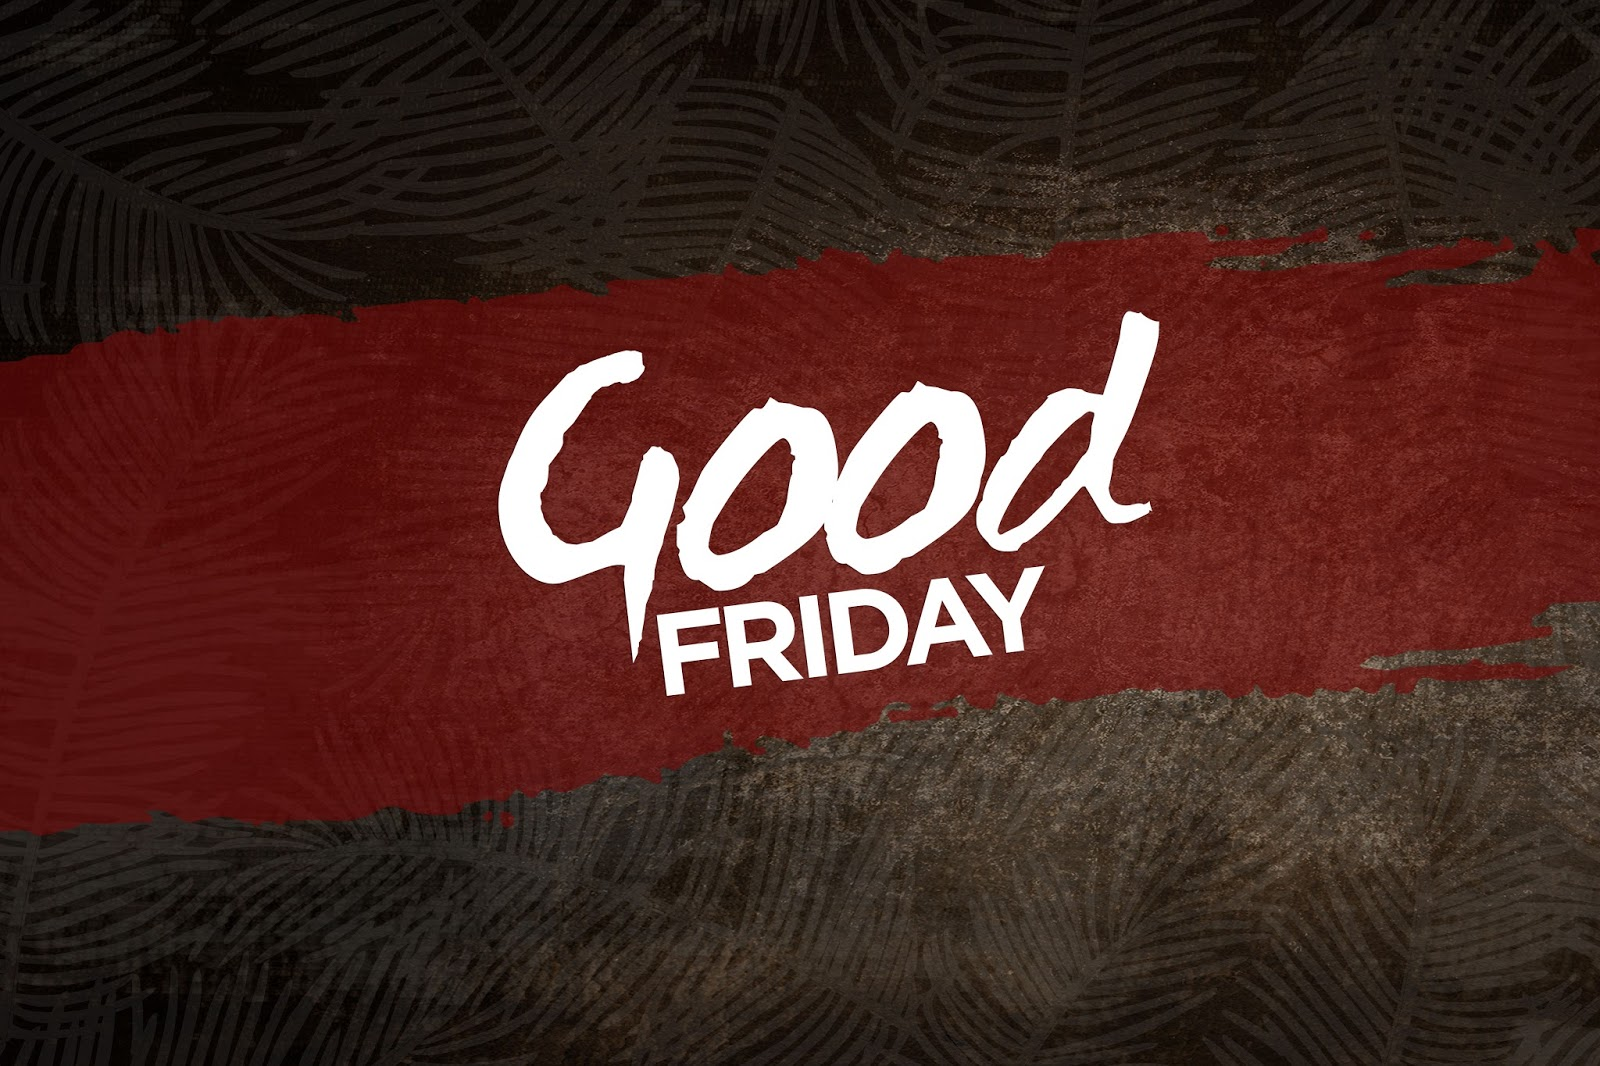 12 good friday message wishes text messages of good friday 2018 goaod friday kristyandbryce Choice Image